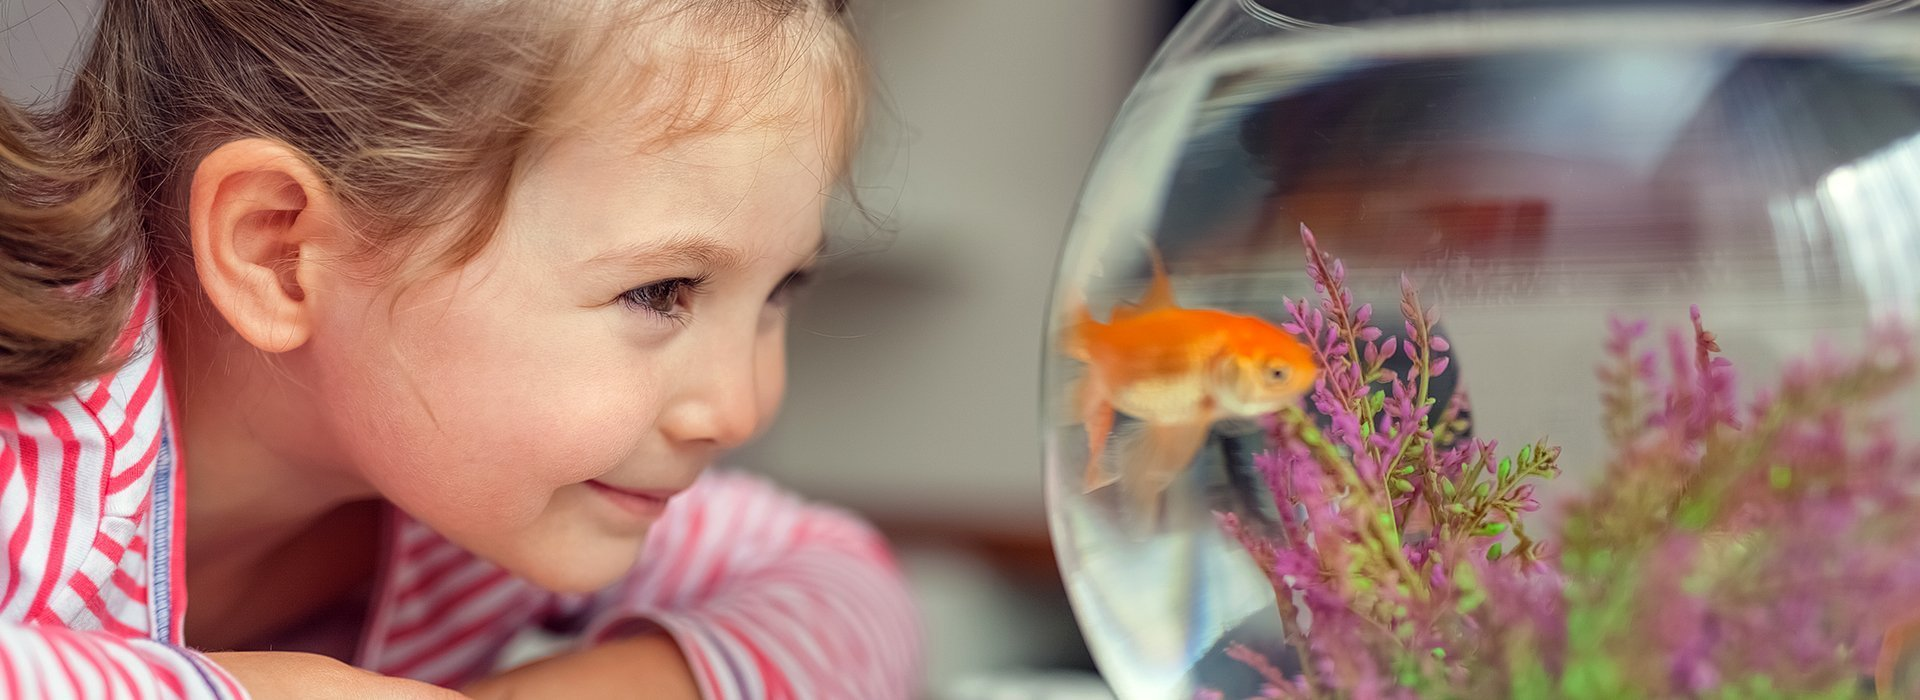 girl looking at her fish